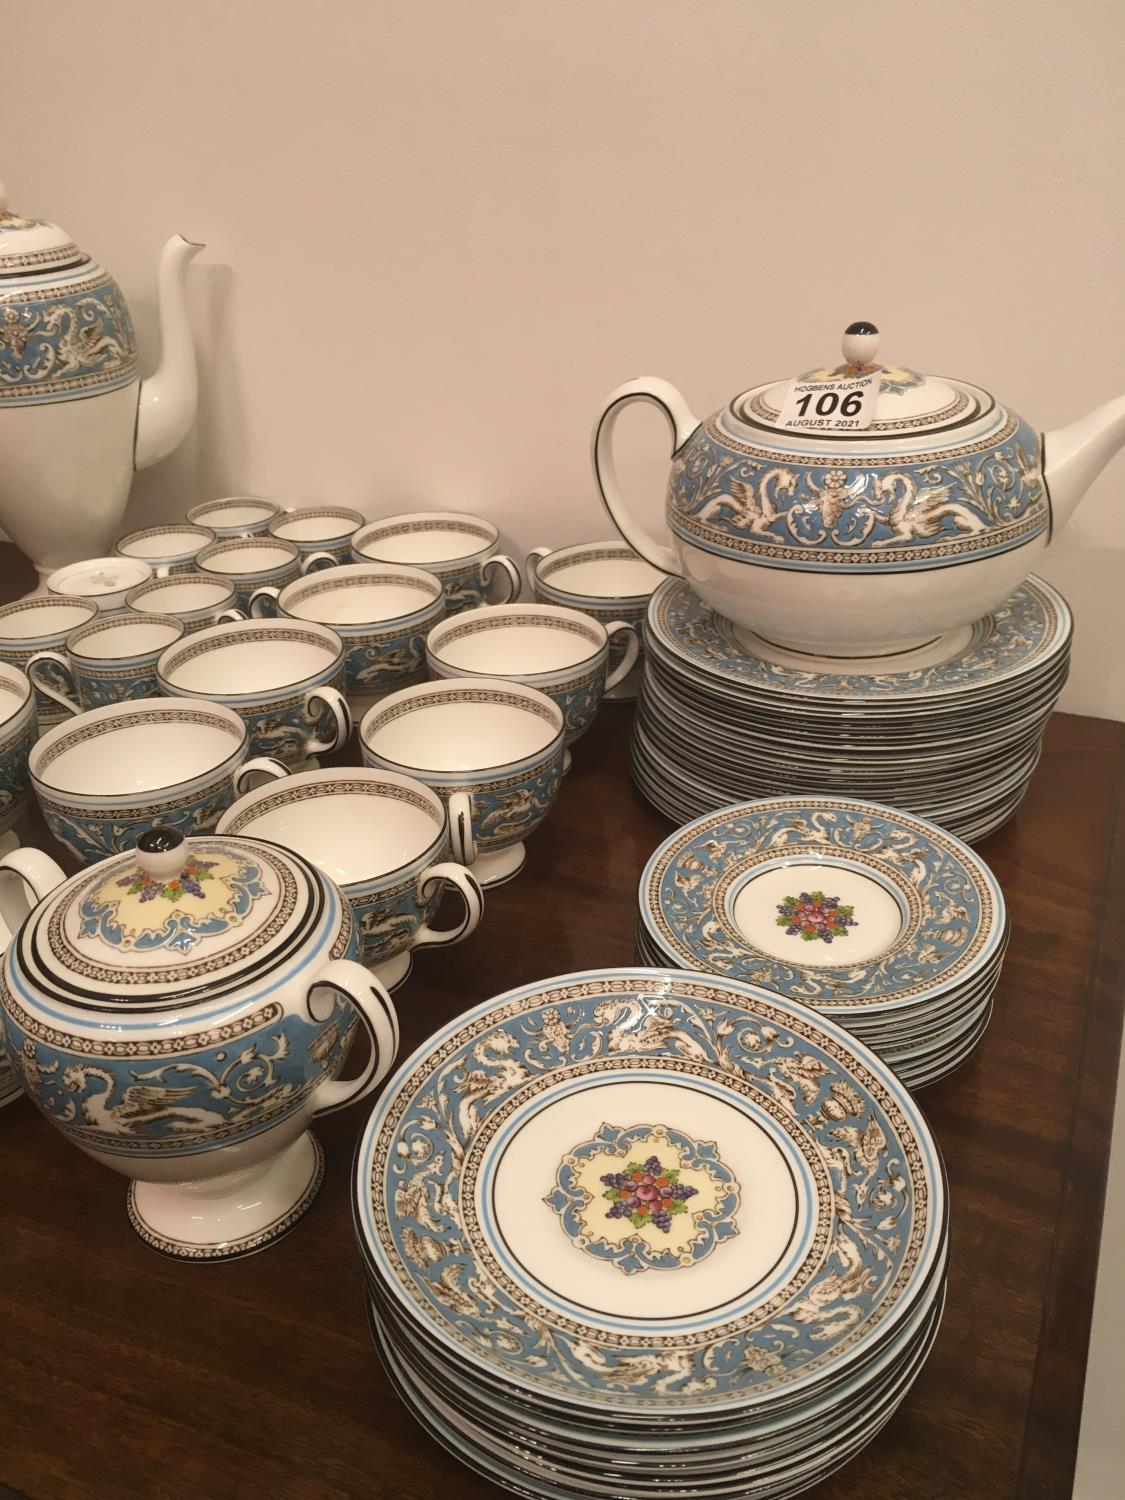 Wedgwood Classical Tea and Coffee set 8 place setting includes, coffee pot, tea pot, cream and - Image 2 of 7